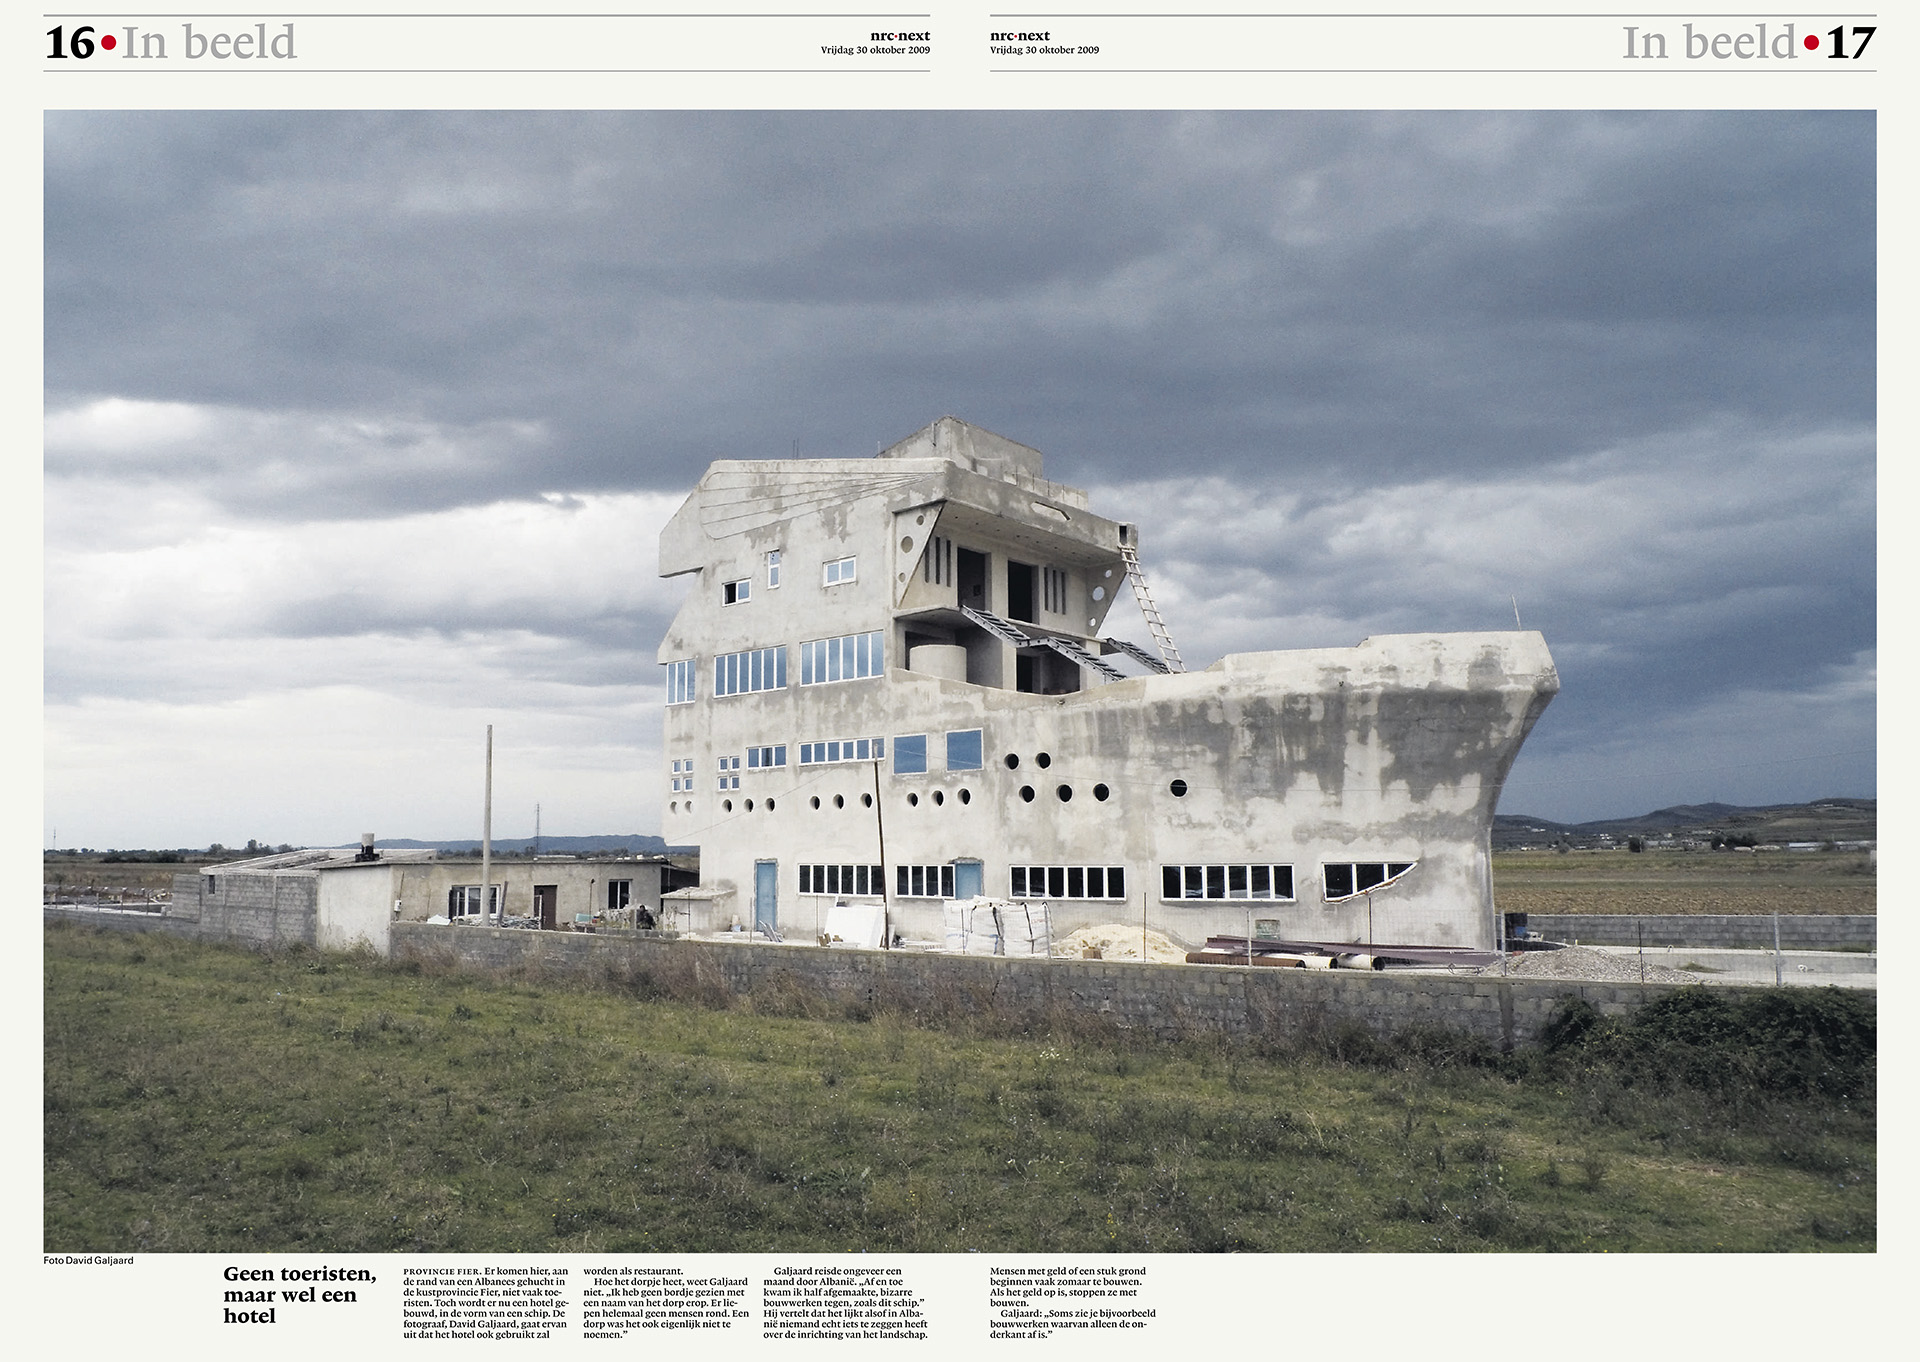 NRC Next - In beeld - Schip - David Galjaard